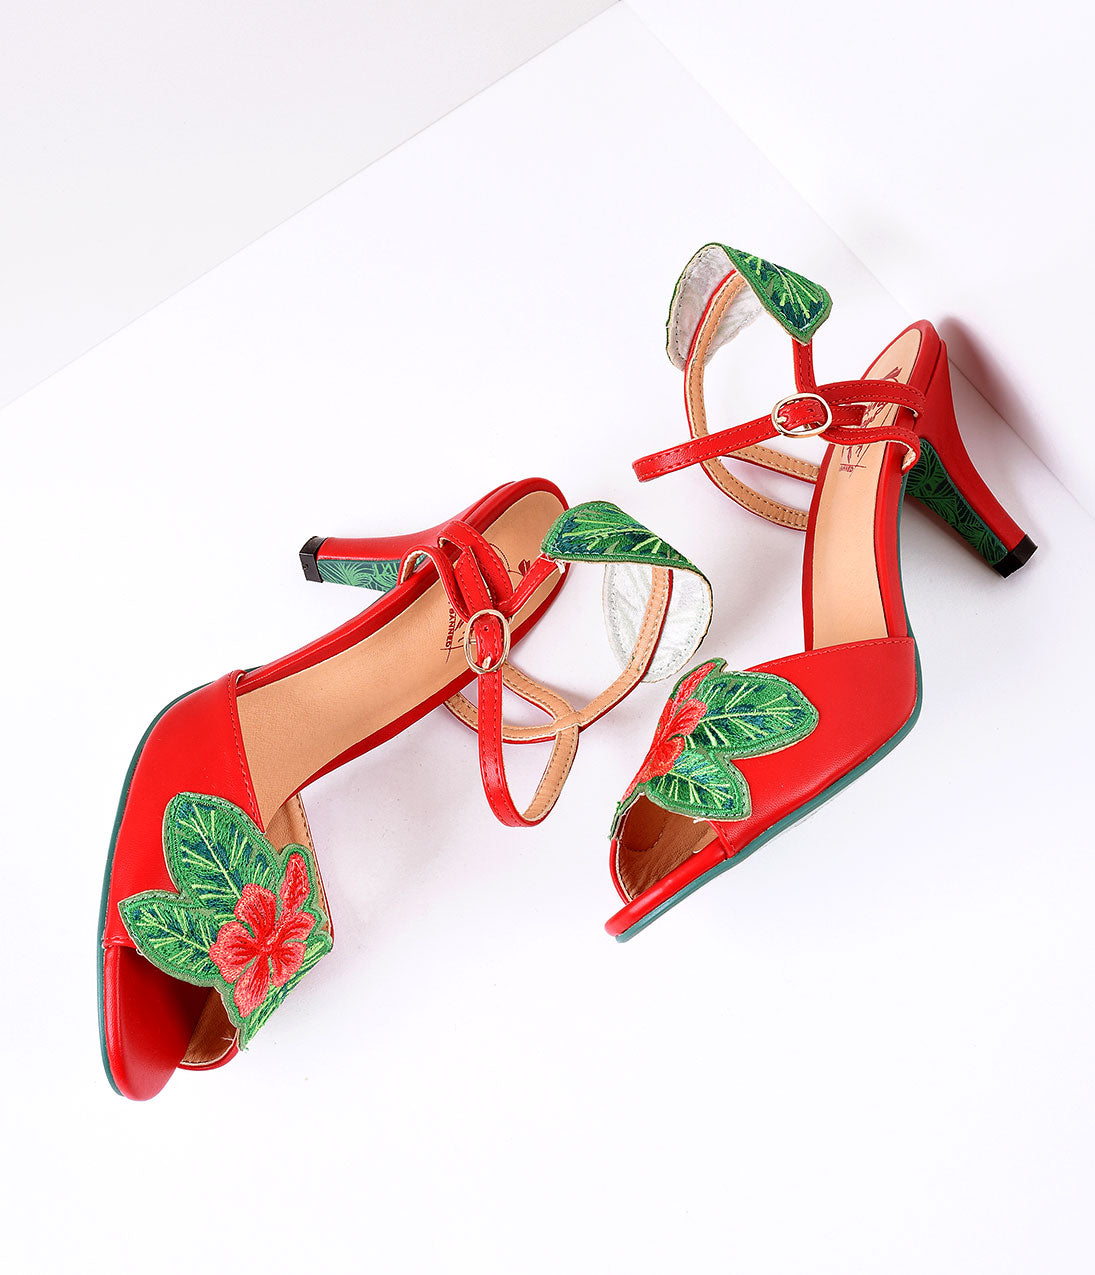 Pin Up Shoes- Heels & Flats Banned Red  April Love Tropical Floral Leatherette Peep Toe Heels Shoes $61.00 AT vintagedancer.com